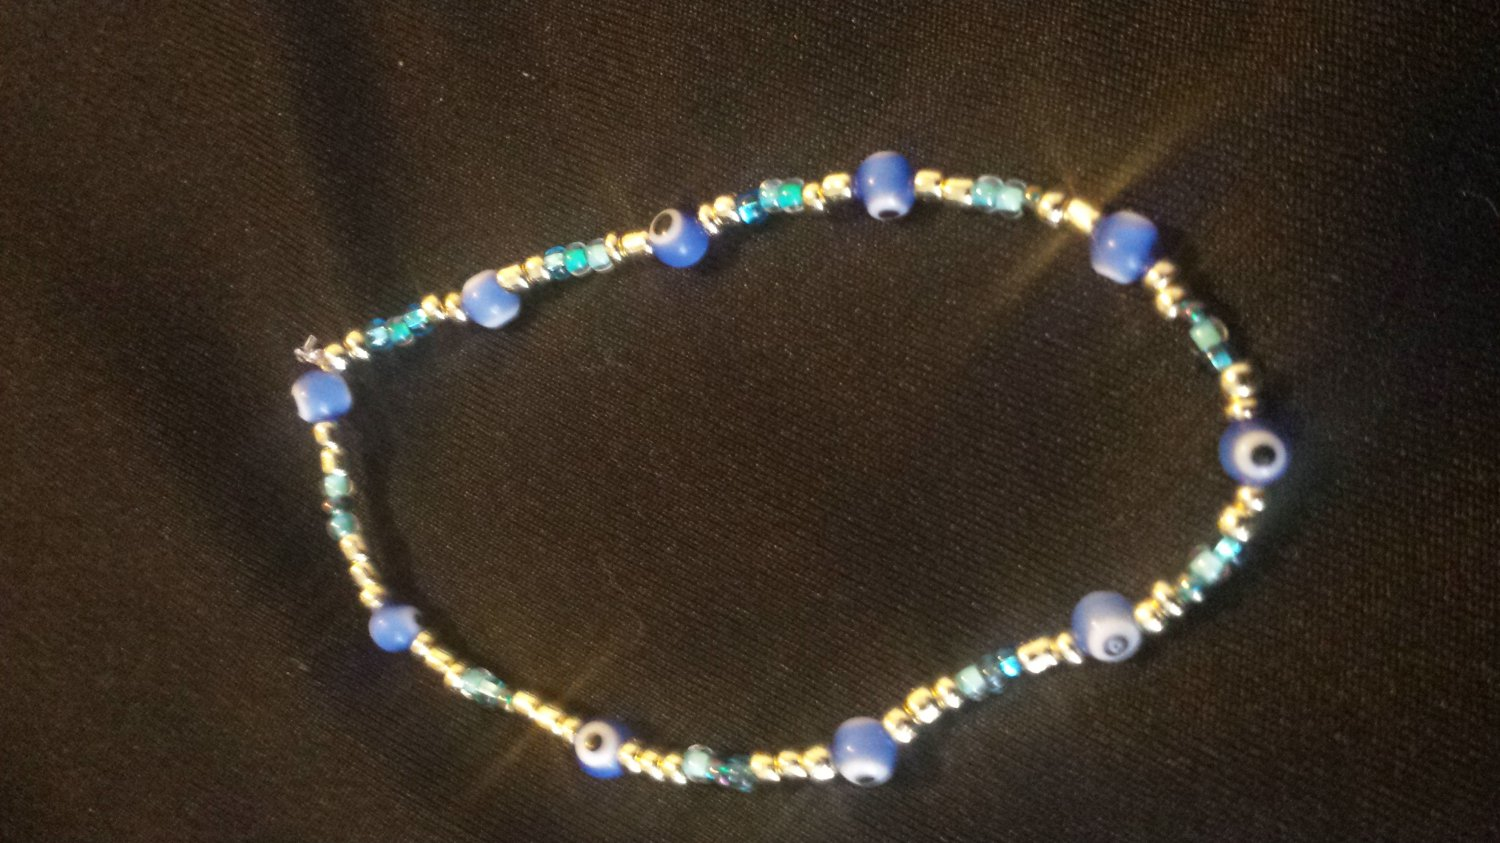 Simulated Gold Evil Eye Bracelet with Turquoise and Blue Accent Beads